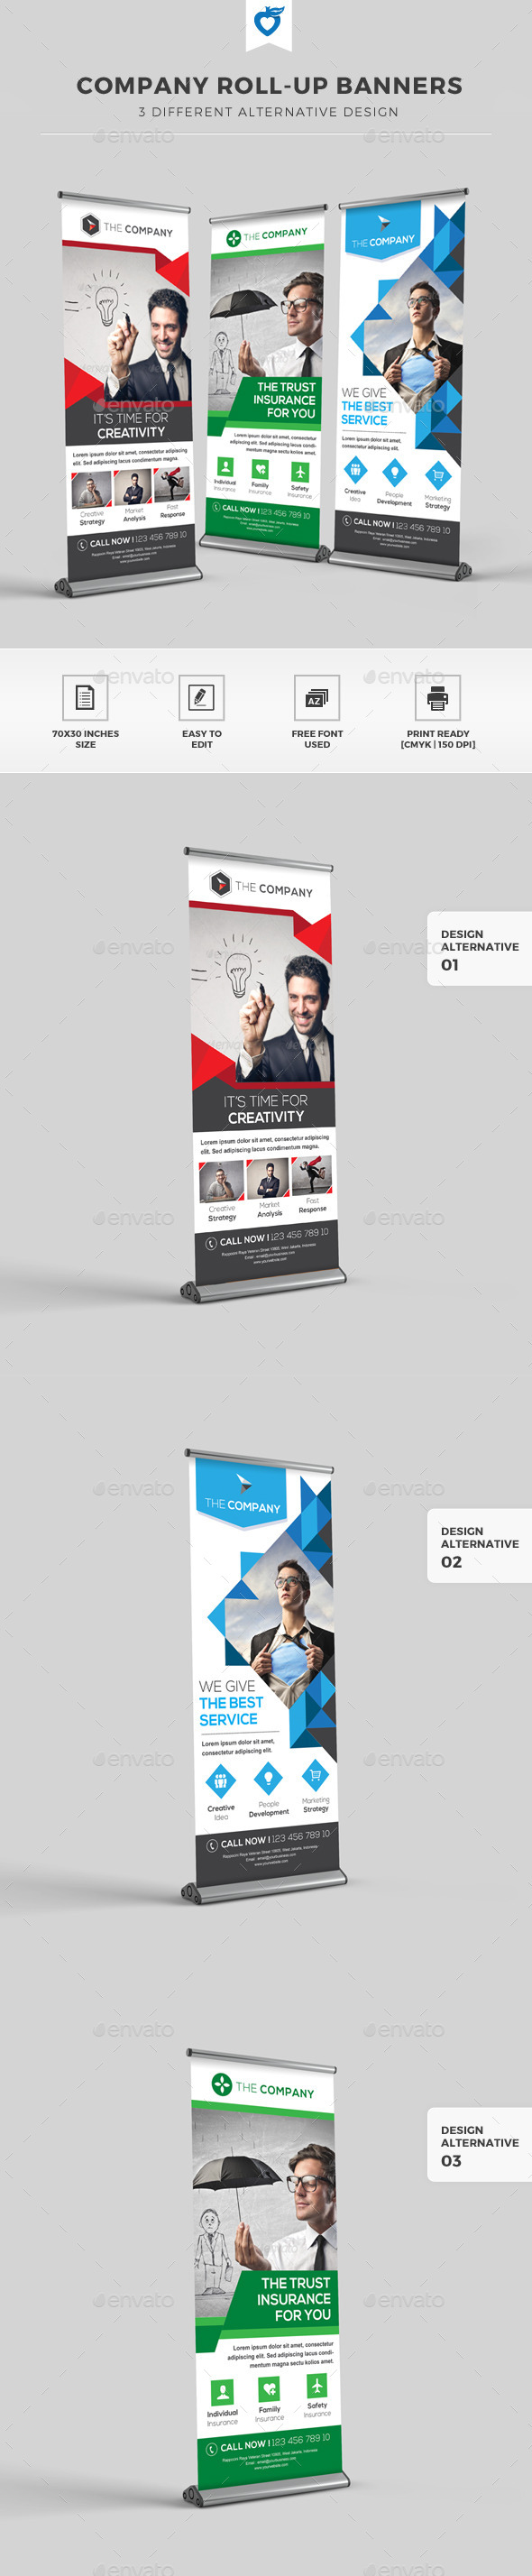 GraphicRiver Company Roll-up Banners 11765971